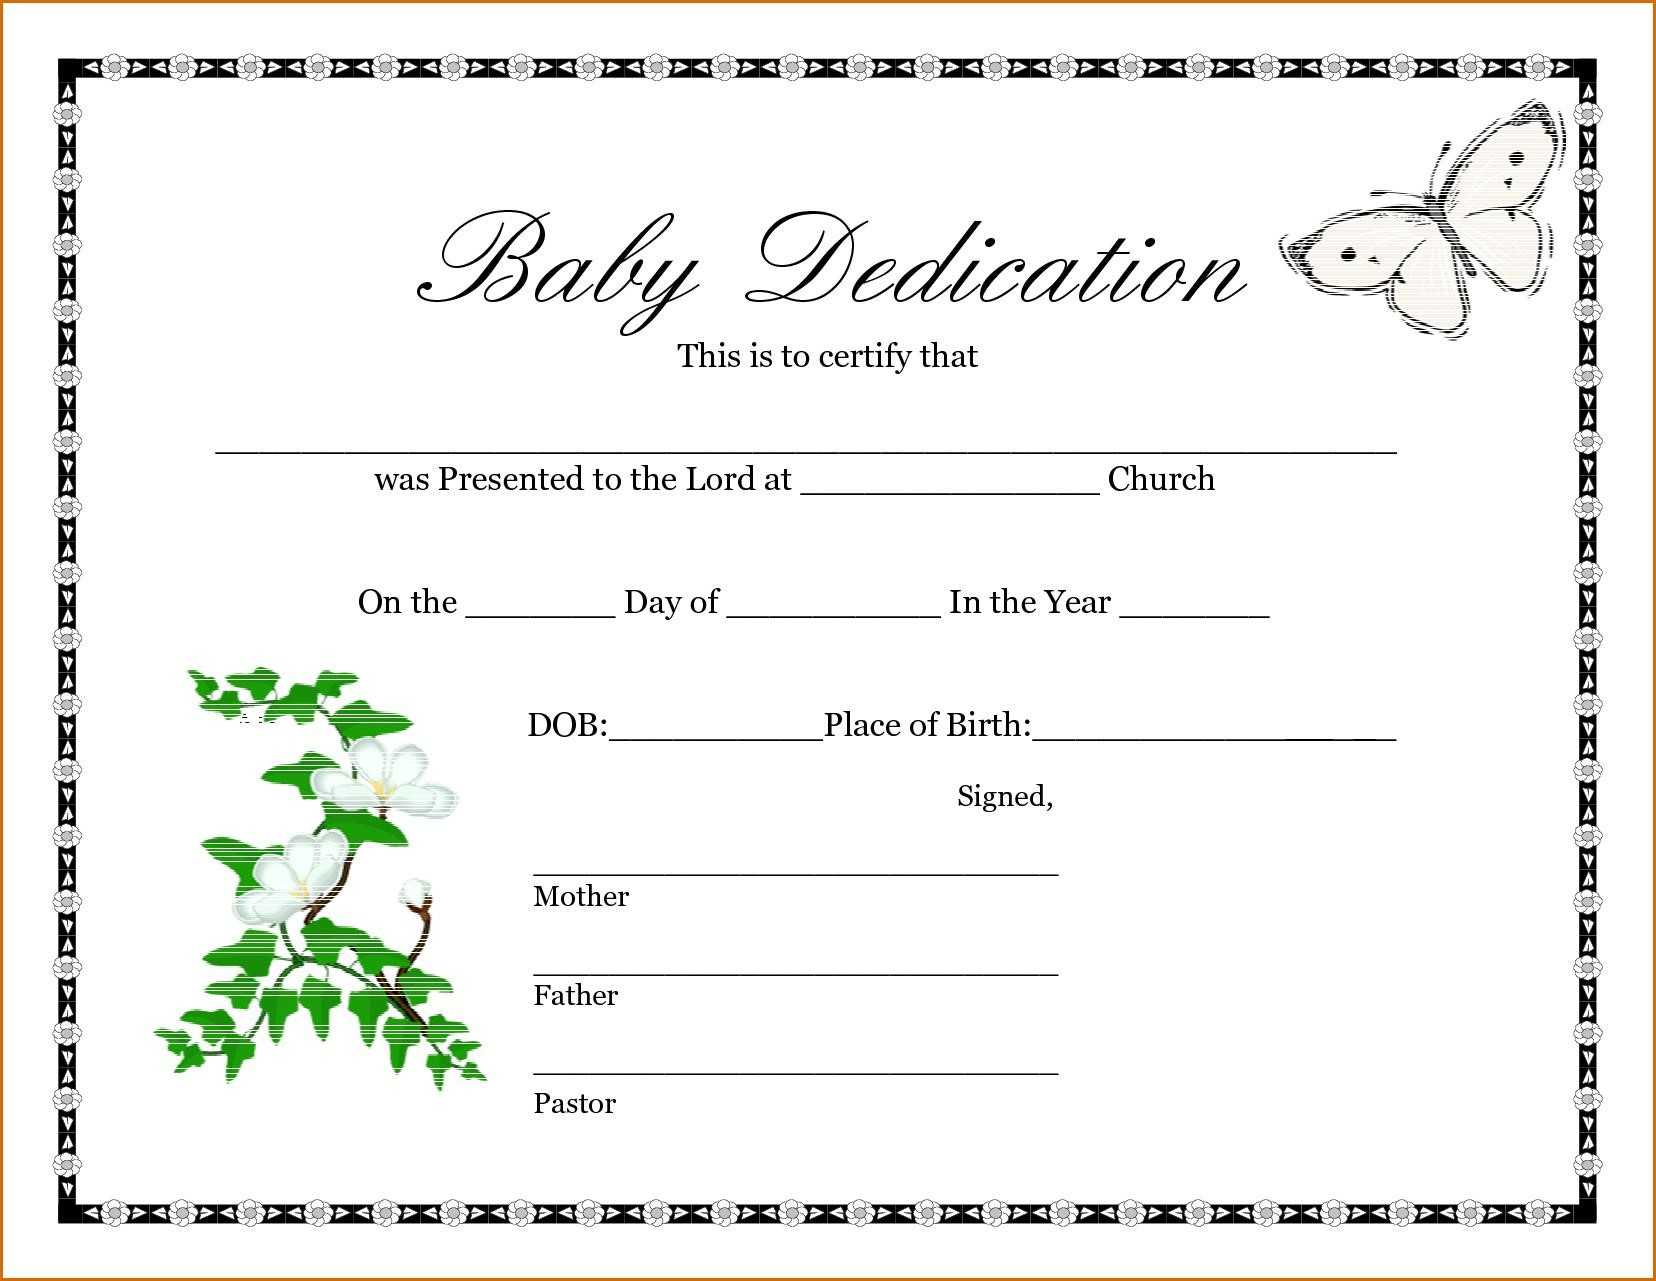 028 Baby Dedication Certificate Template Fake Birth Maker Intended For Birth Certificate Fake Template